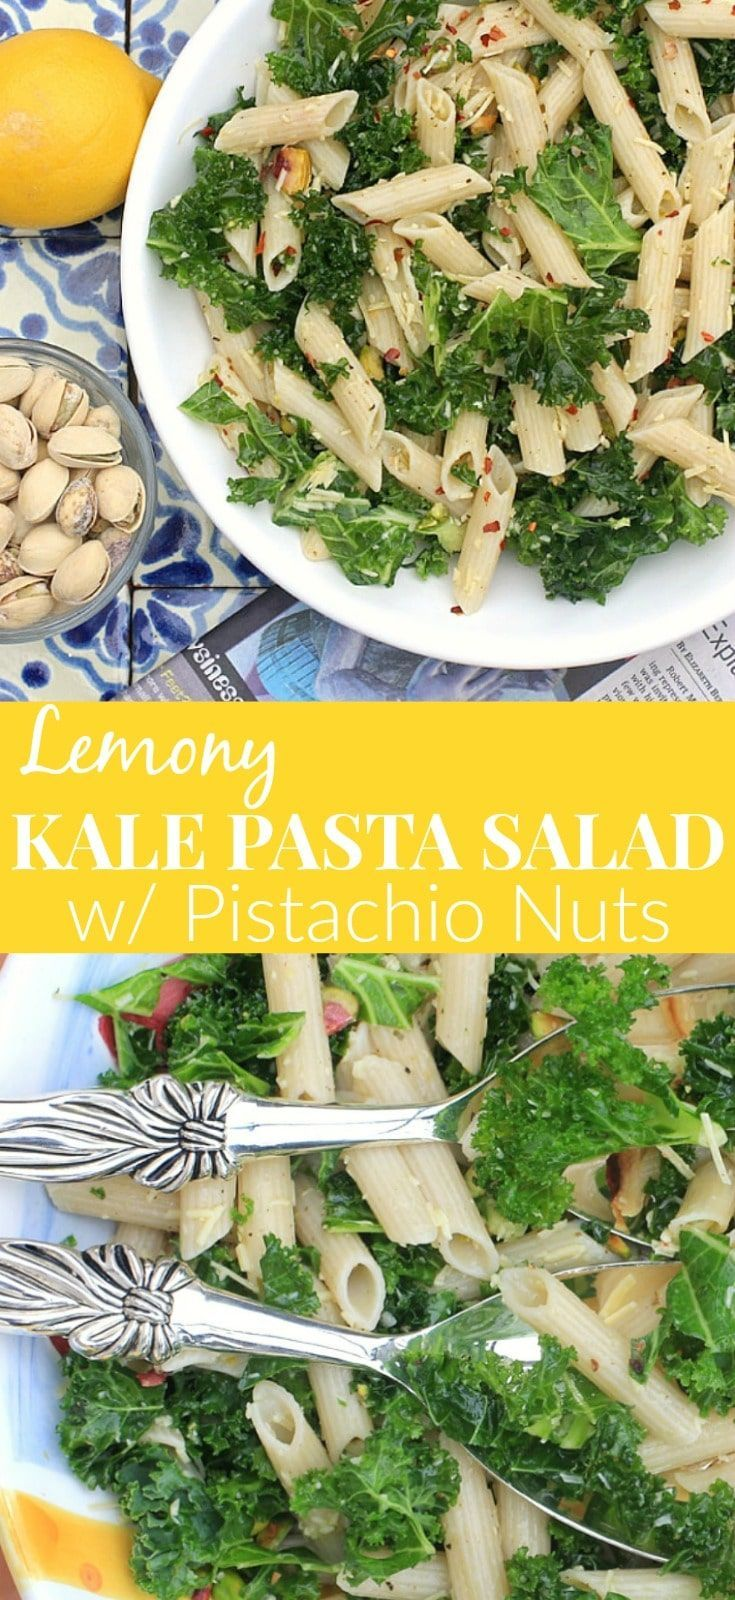 This Lemony Kale Pasta Salad with Pistachio Nuts is super simple to make, and packed with flavor. Make it with your pasta of choice ~ gluten free, grain free, or legume based for a nutritious boost of protein and fiber. So delicious! #glutenfree #vegetarian #meatlessmonday #pastasalad #kale via @thespicyrd